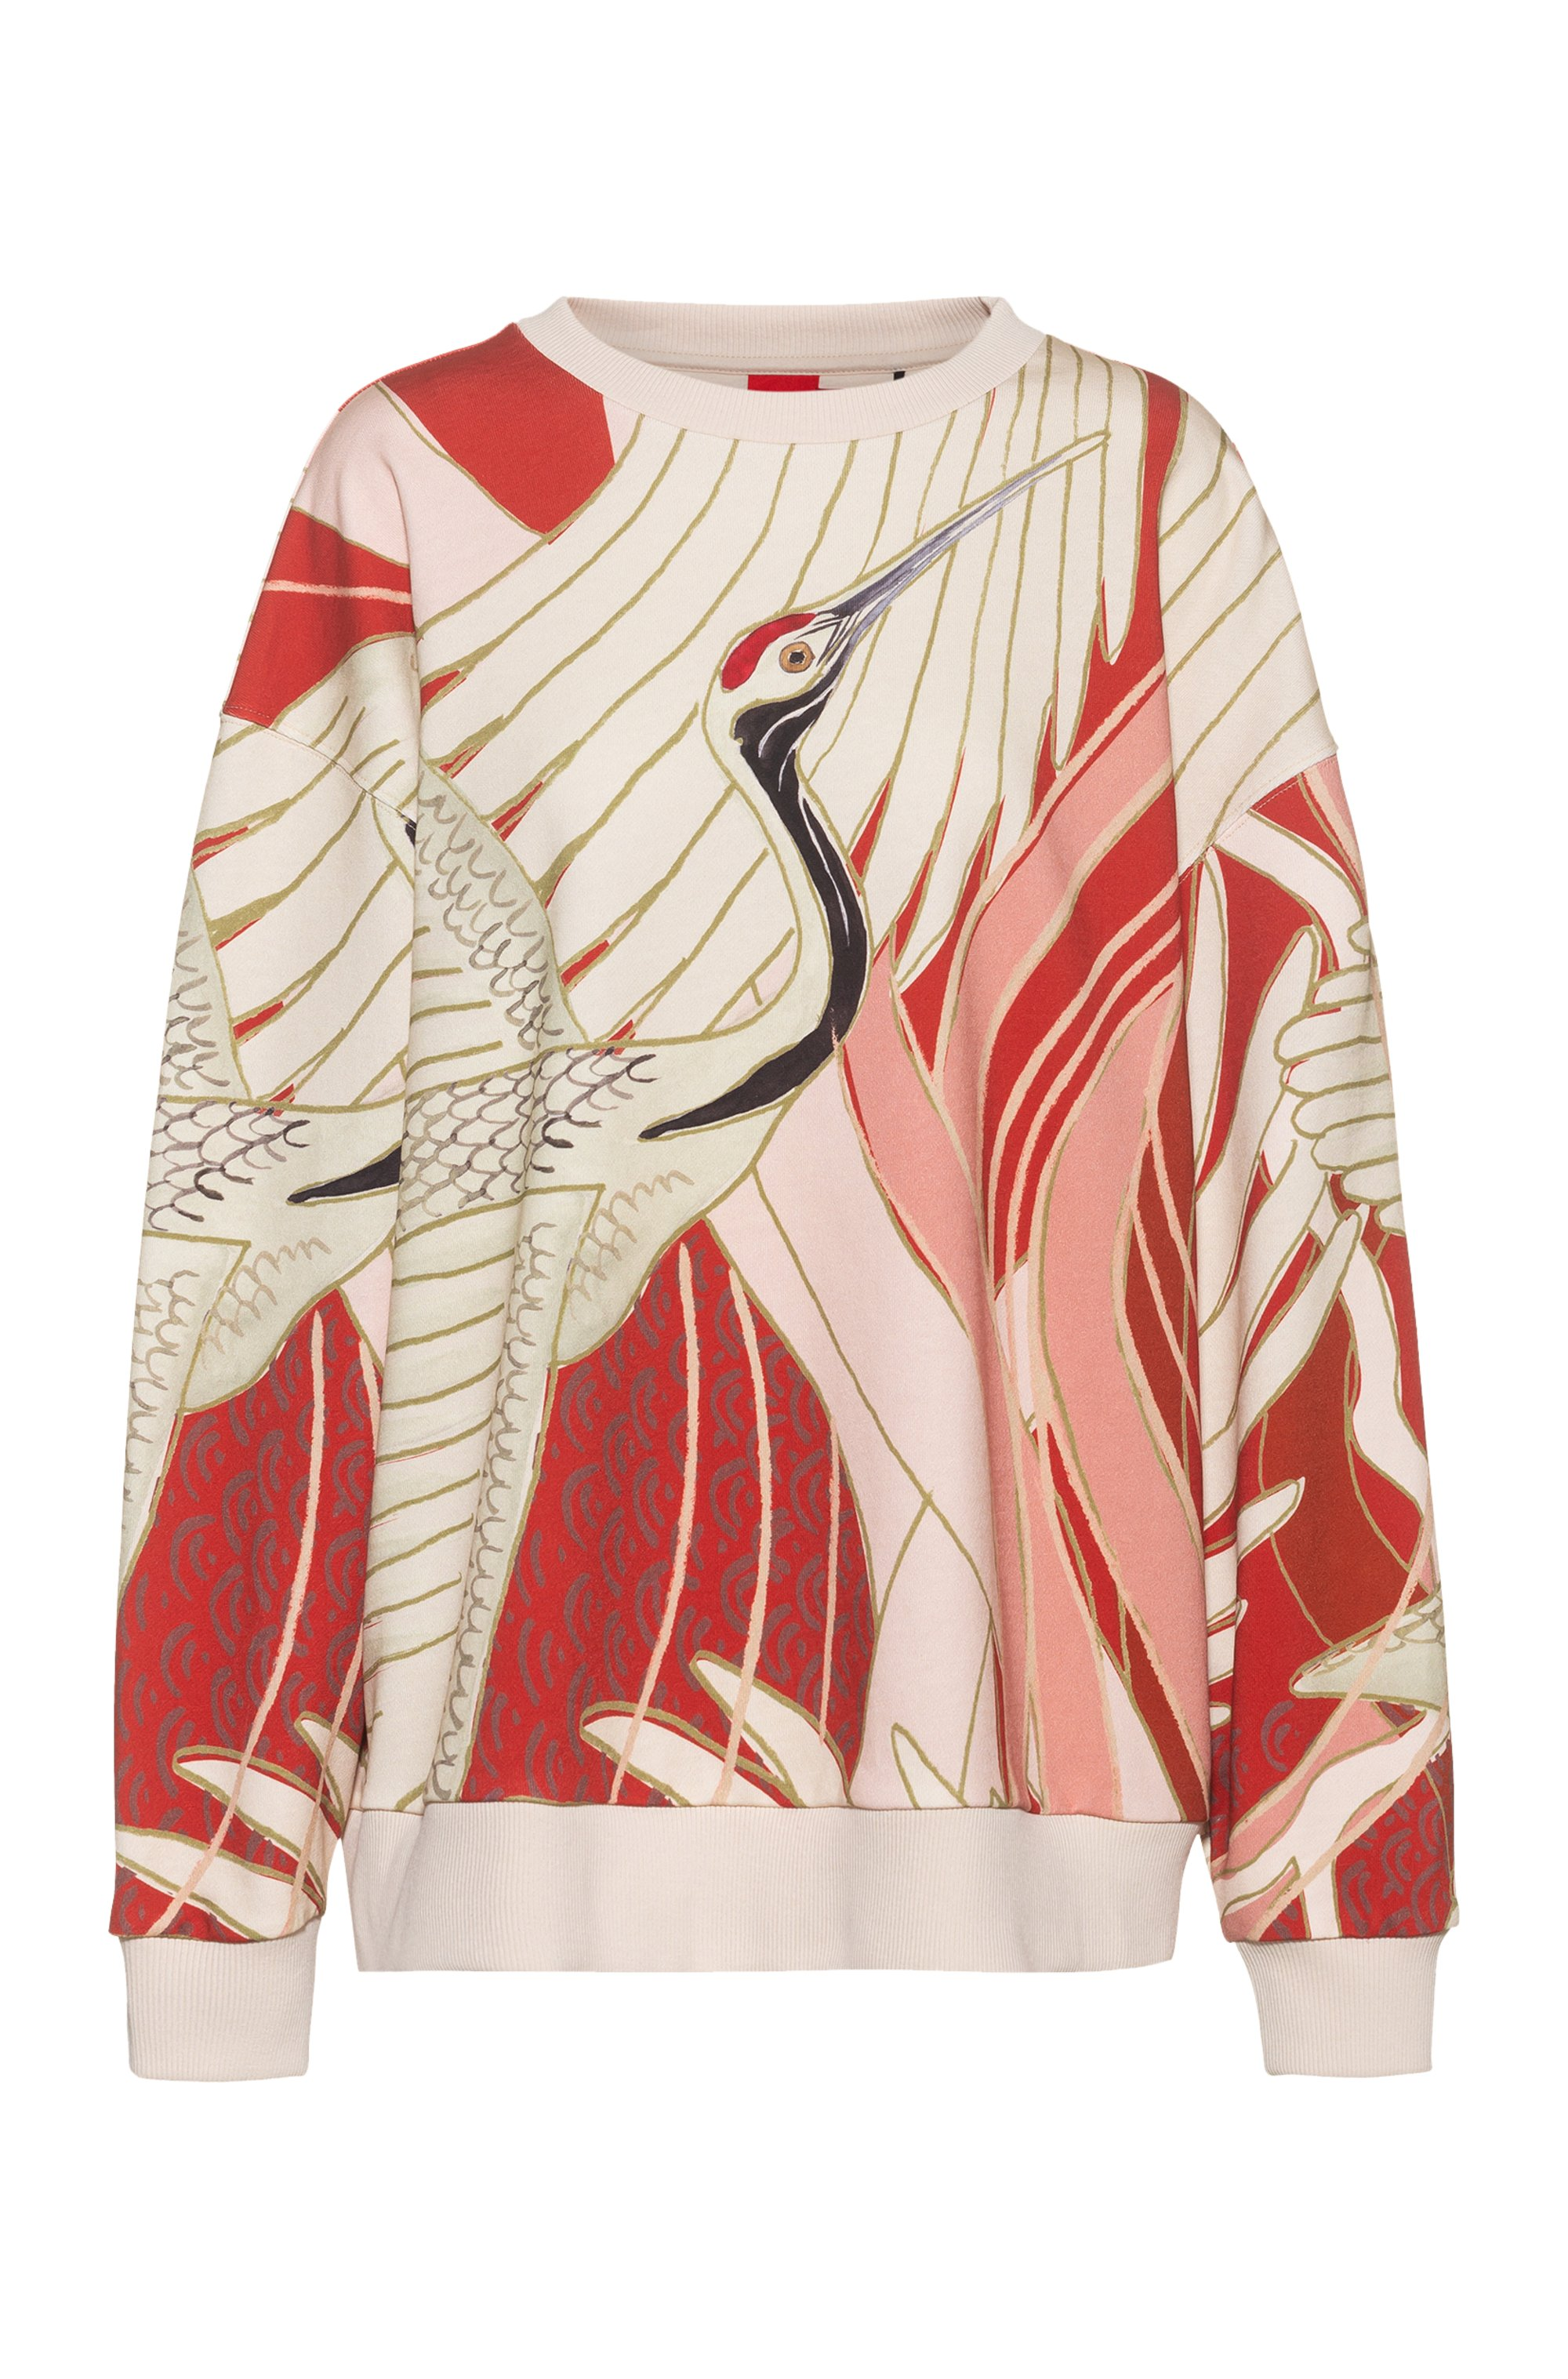 Relaxed-fit sweatshirt in Recot2® cotton with crane print, Patterned